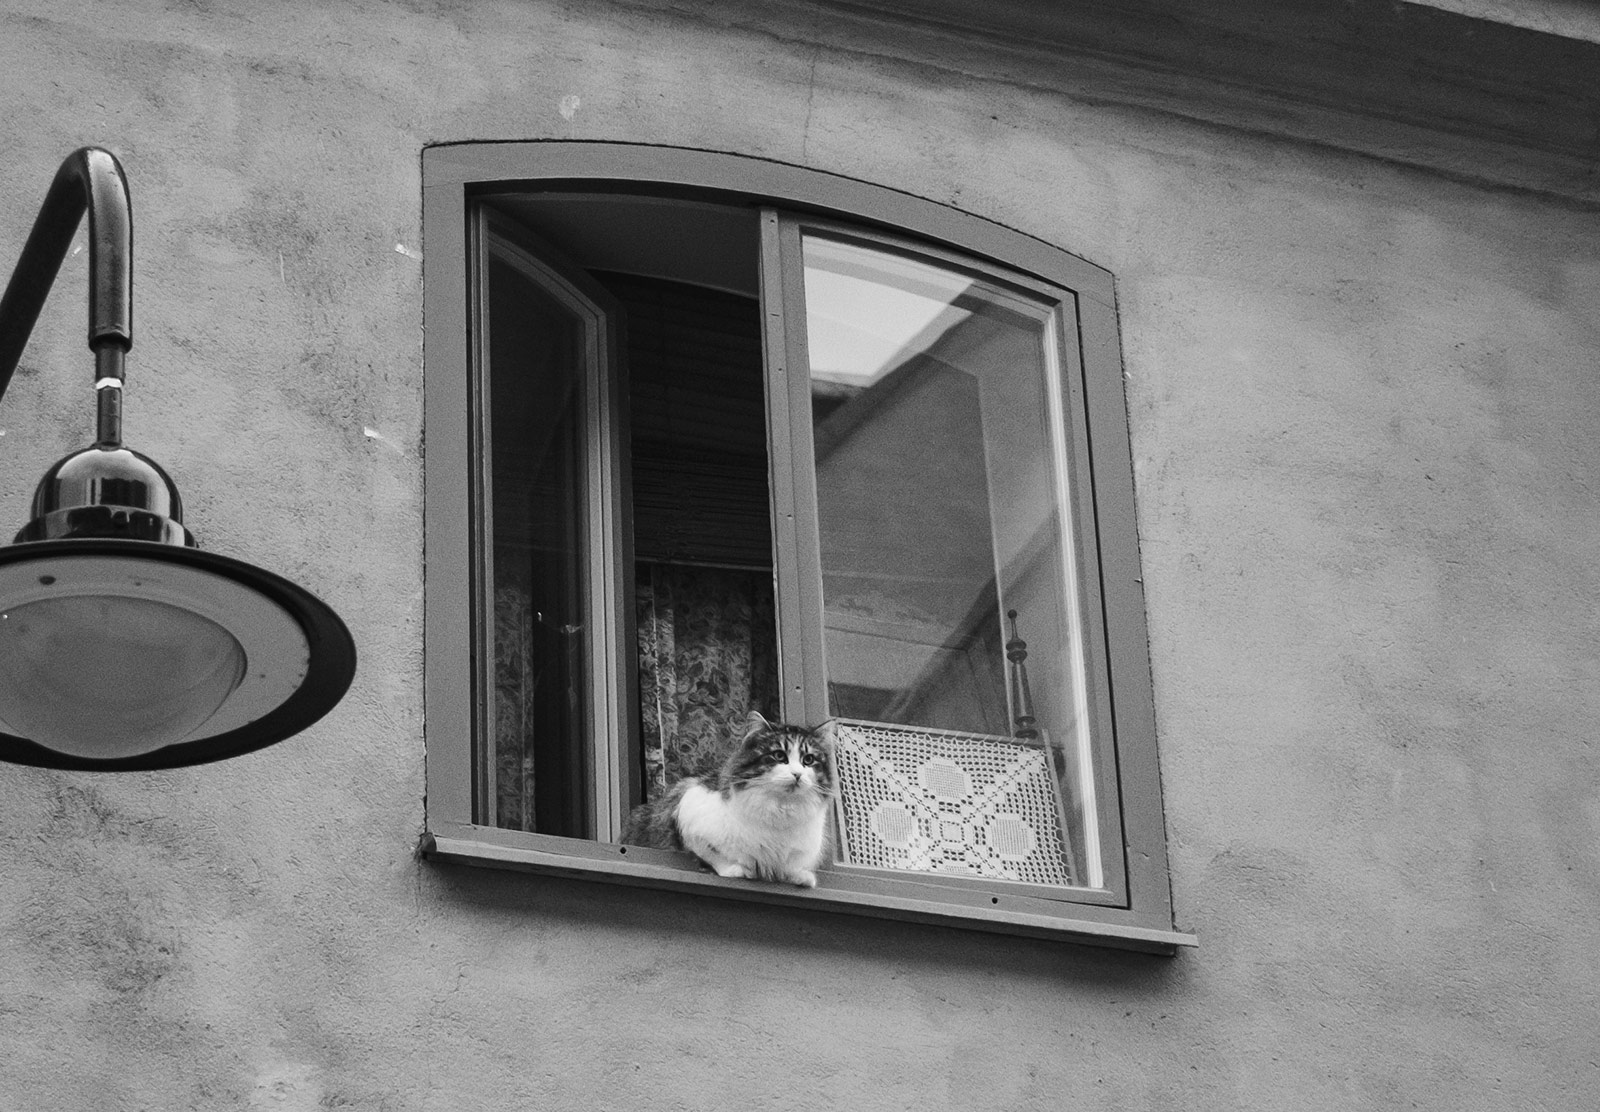 Cat hanging out of window